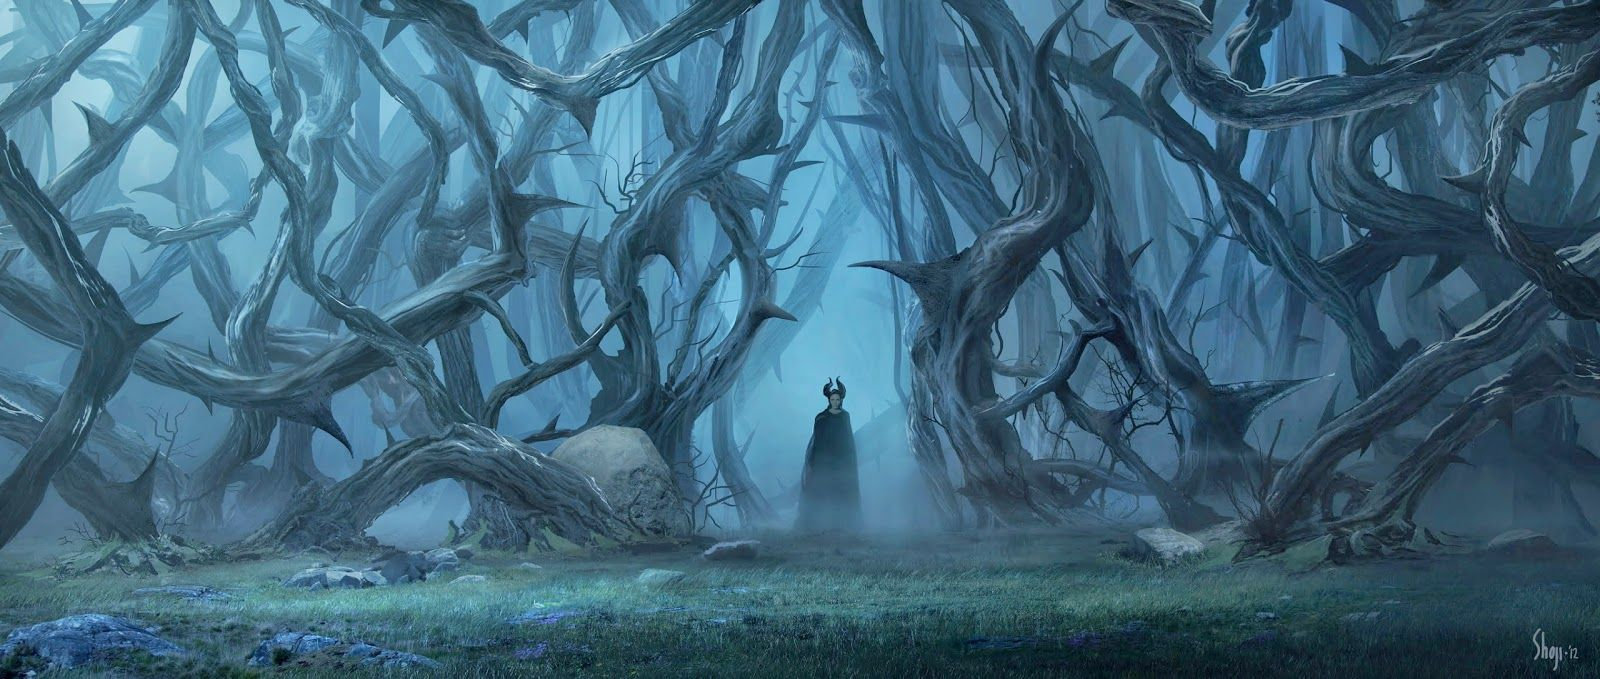 Wall Around The Moors Maleficent Concept Art World